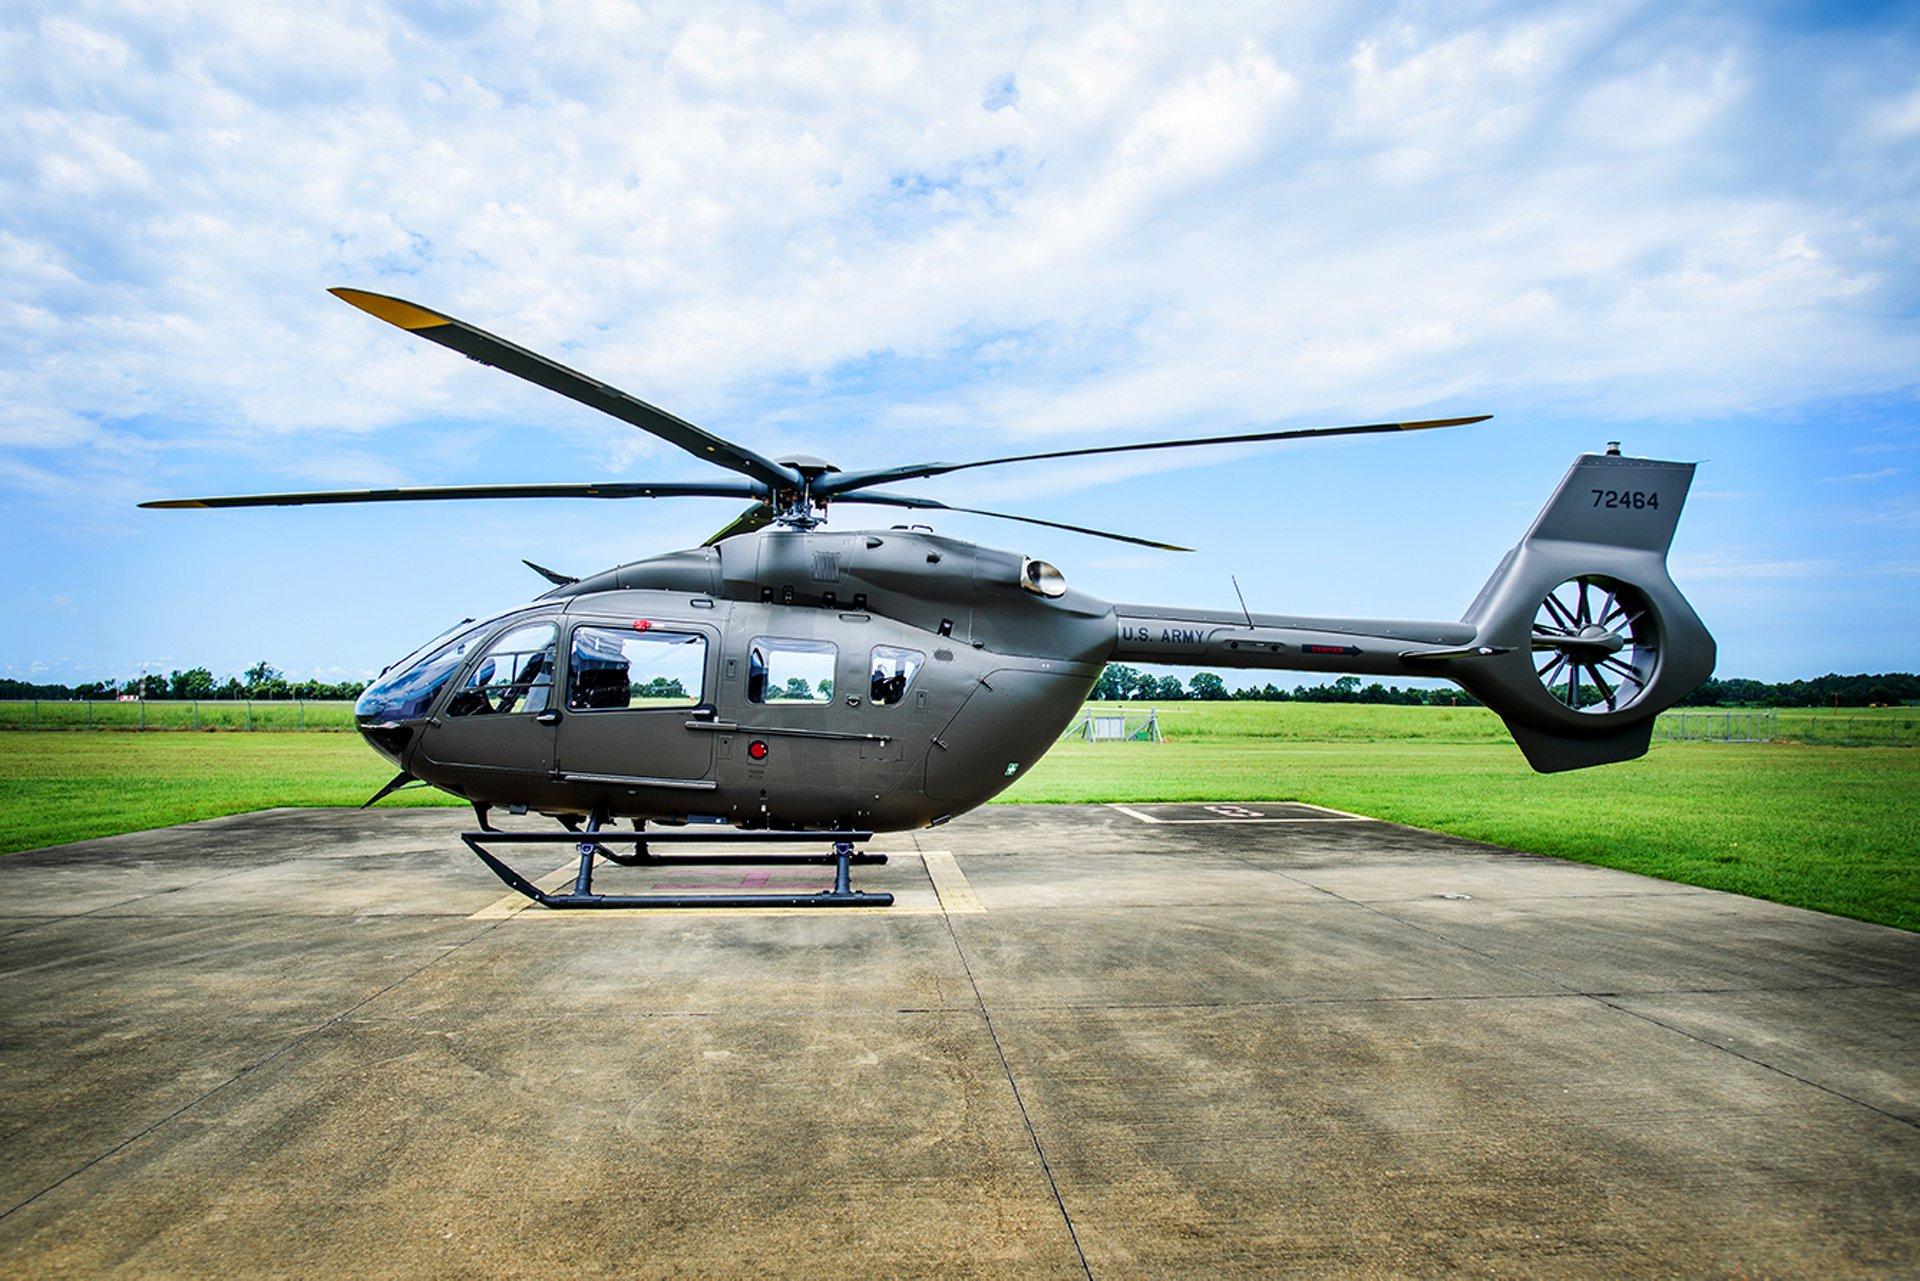 Airbus Helicopters, Inc. has delivered the first UH-72B, the latest variant of its Lakota helicopter, to the U.S. Army National Guard from its production facility in Columbus, Mississippi.